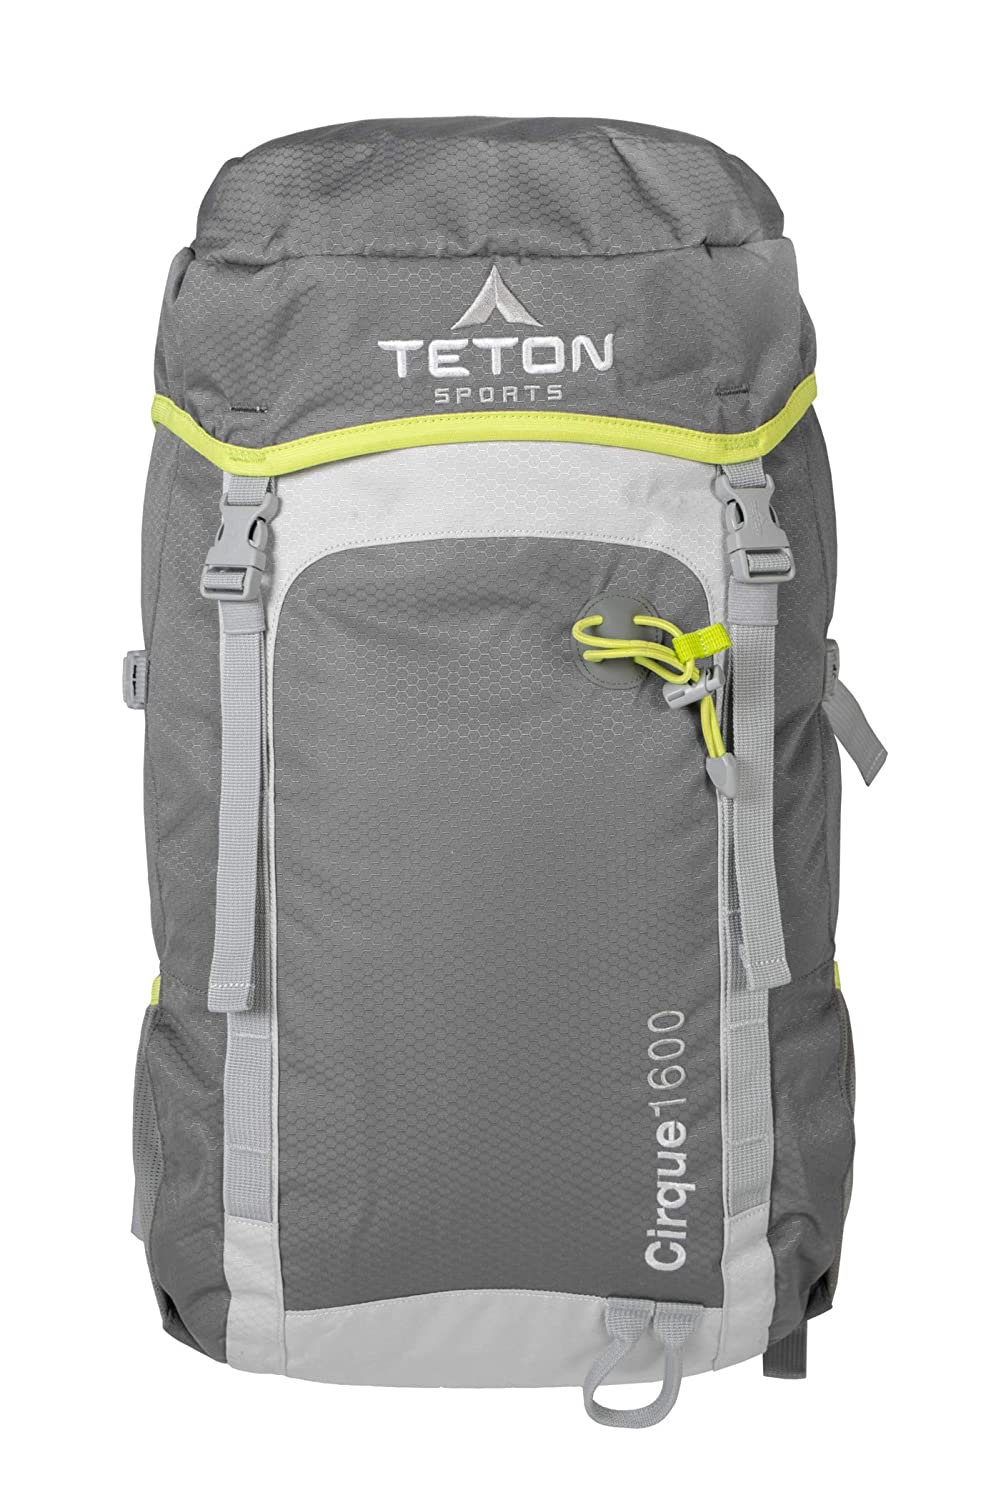 TETON Sports Daypacks Packable, Lightweight, Comfortable Backpack for Hiking and Travel Overnight Bag